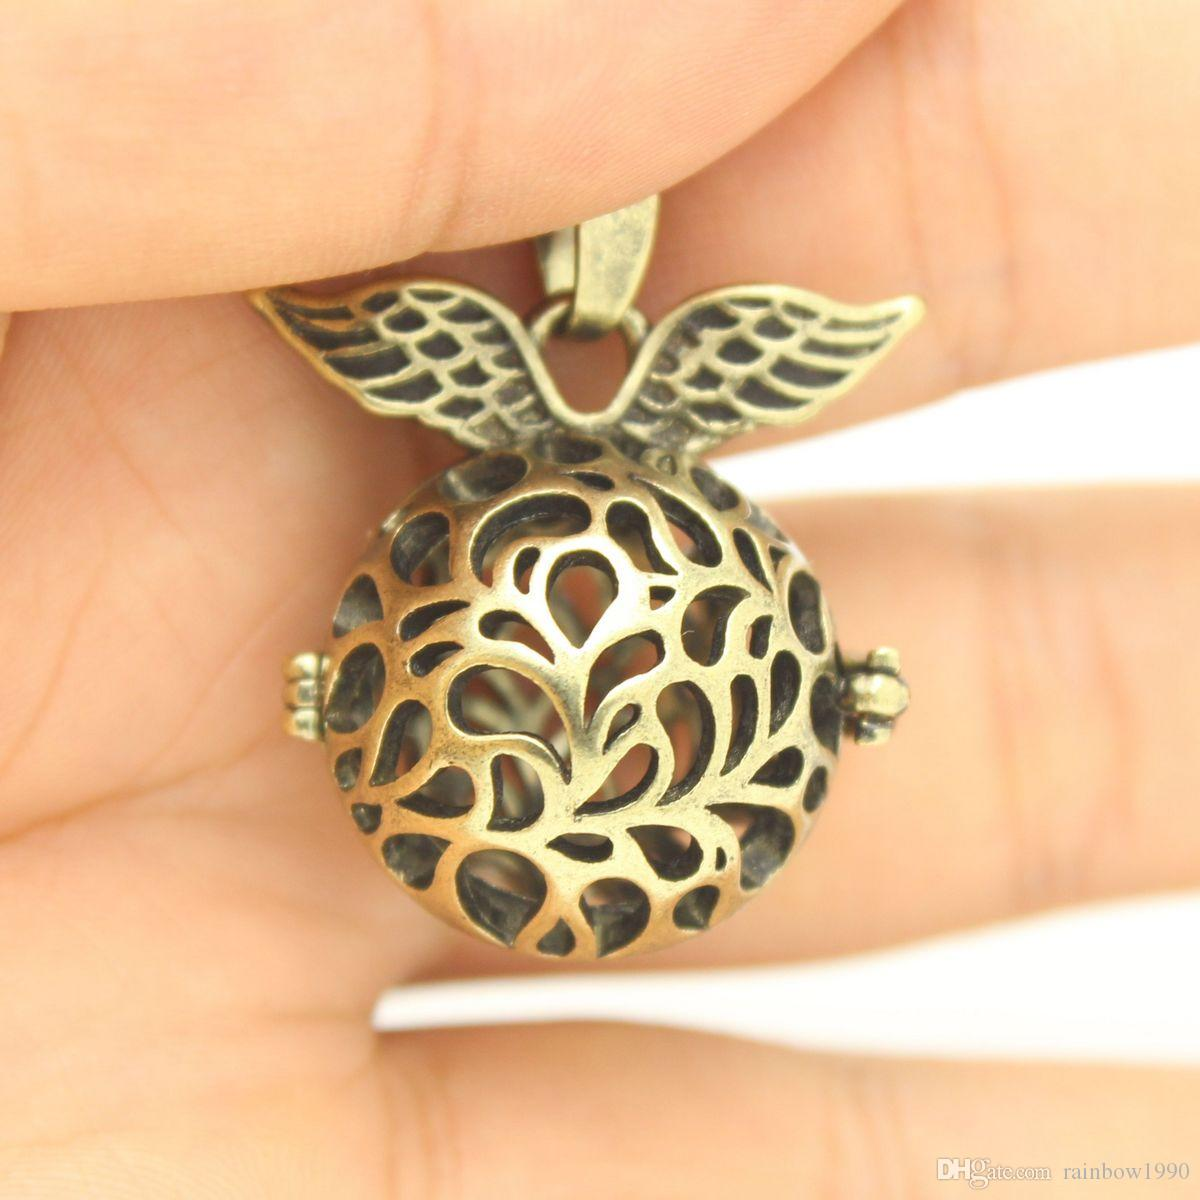 "Aromatherapy Essential Oil Diffuser Jewelry Antique Bronze Wing Flower Hollow Magic Box Locket Pendant Necklace With 30"" Chain"